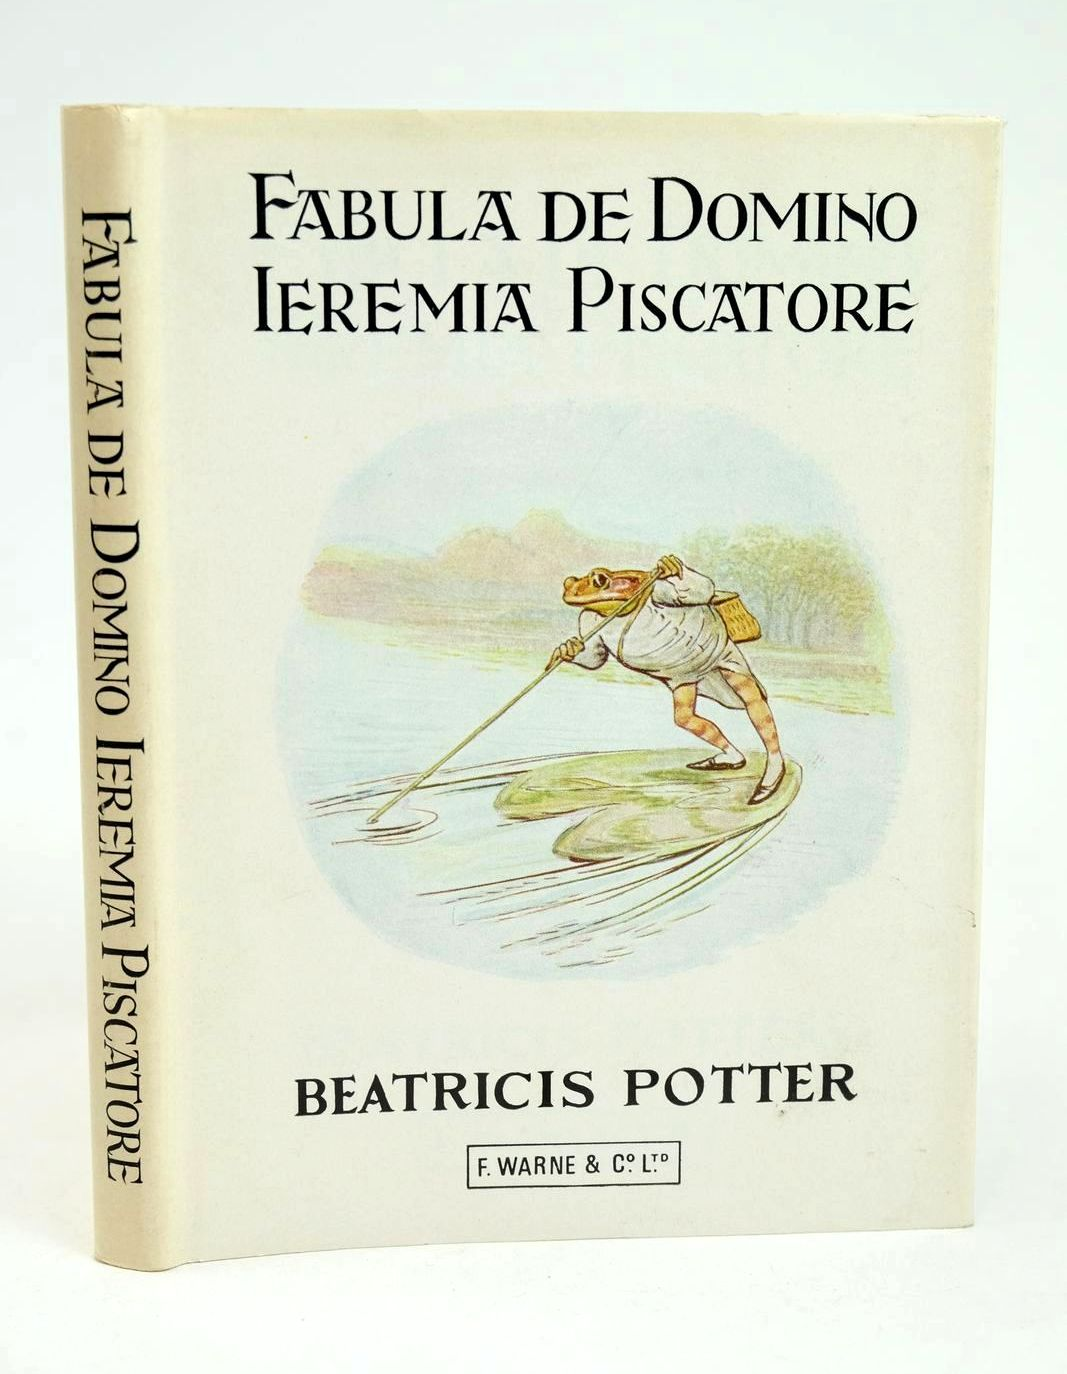 Photo of FABULA DE DOMINO IEREMIA PISCATORE written by Potter, Beatrix illustrated by Potter, Beatrix published by Frederick Warne (Publishers) Ltd. (STOCK CODE: 1318689)  for sale by Stella & Rose's Books